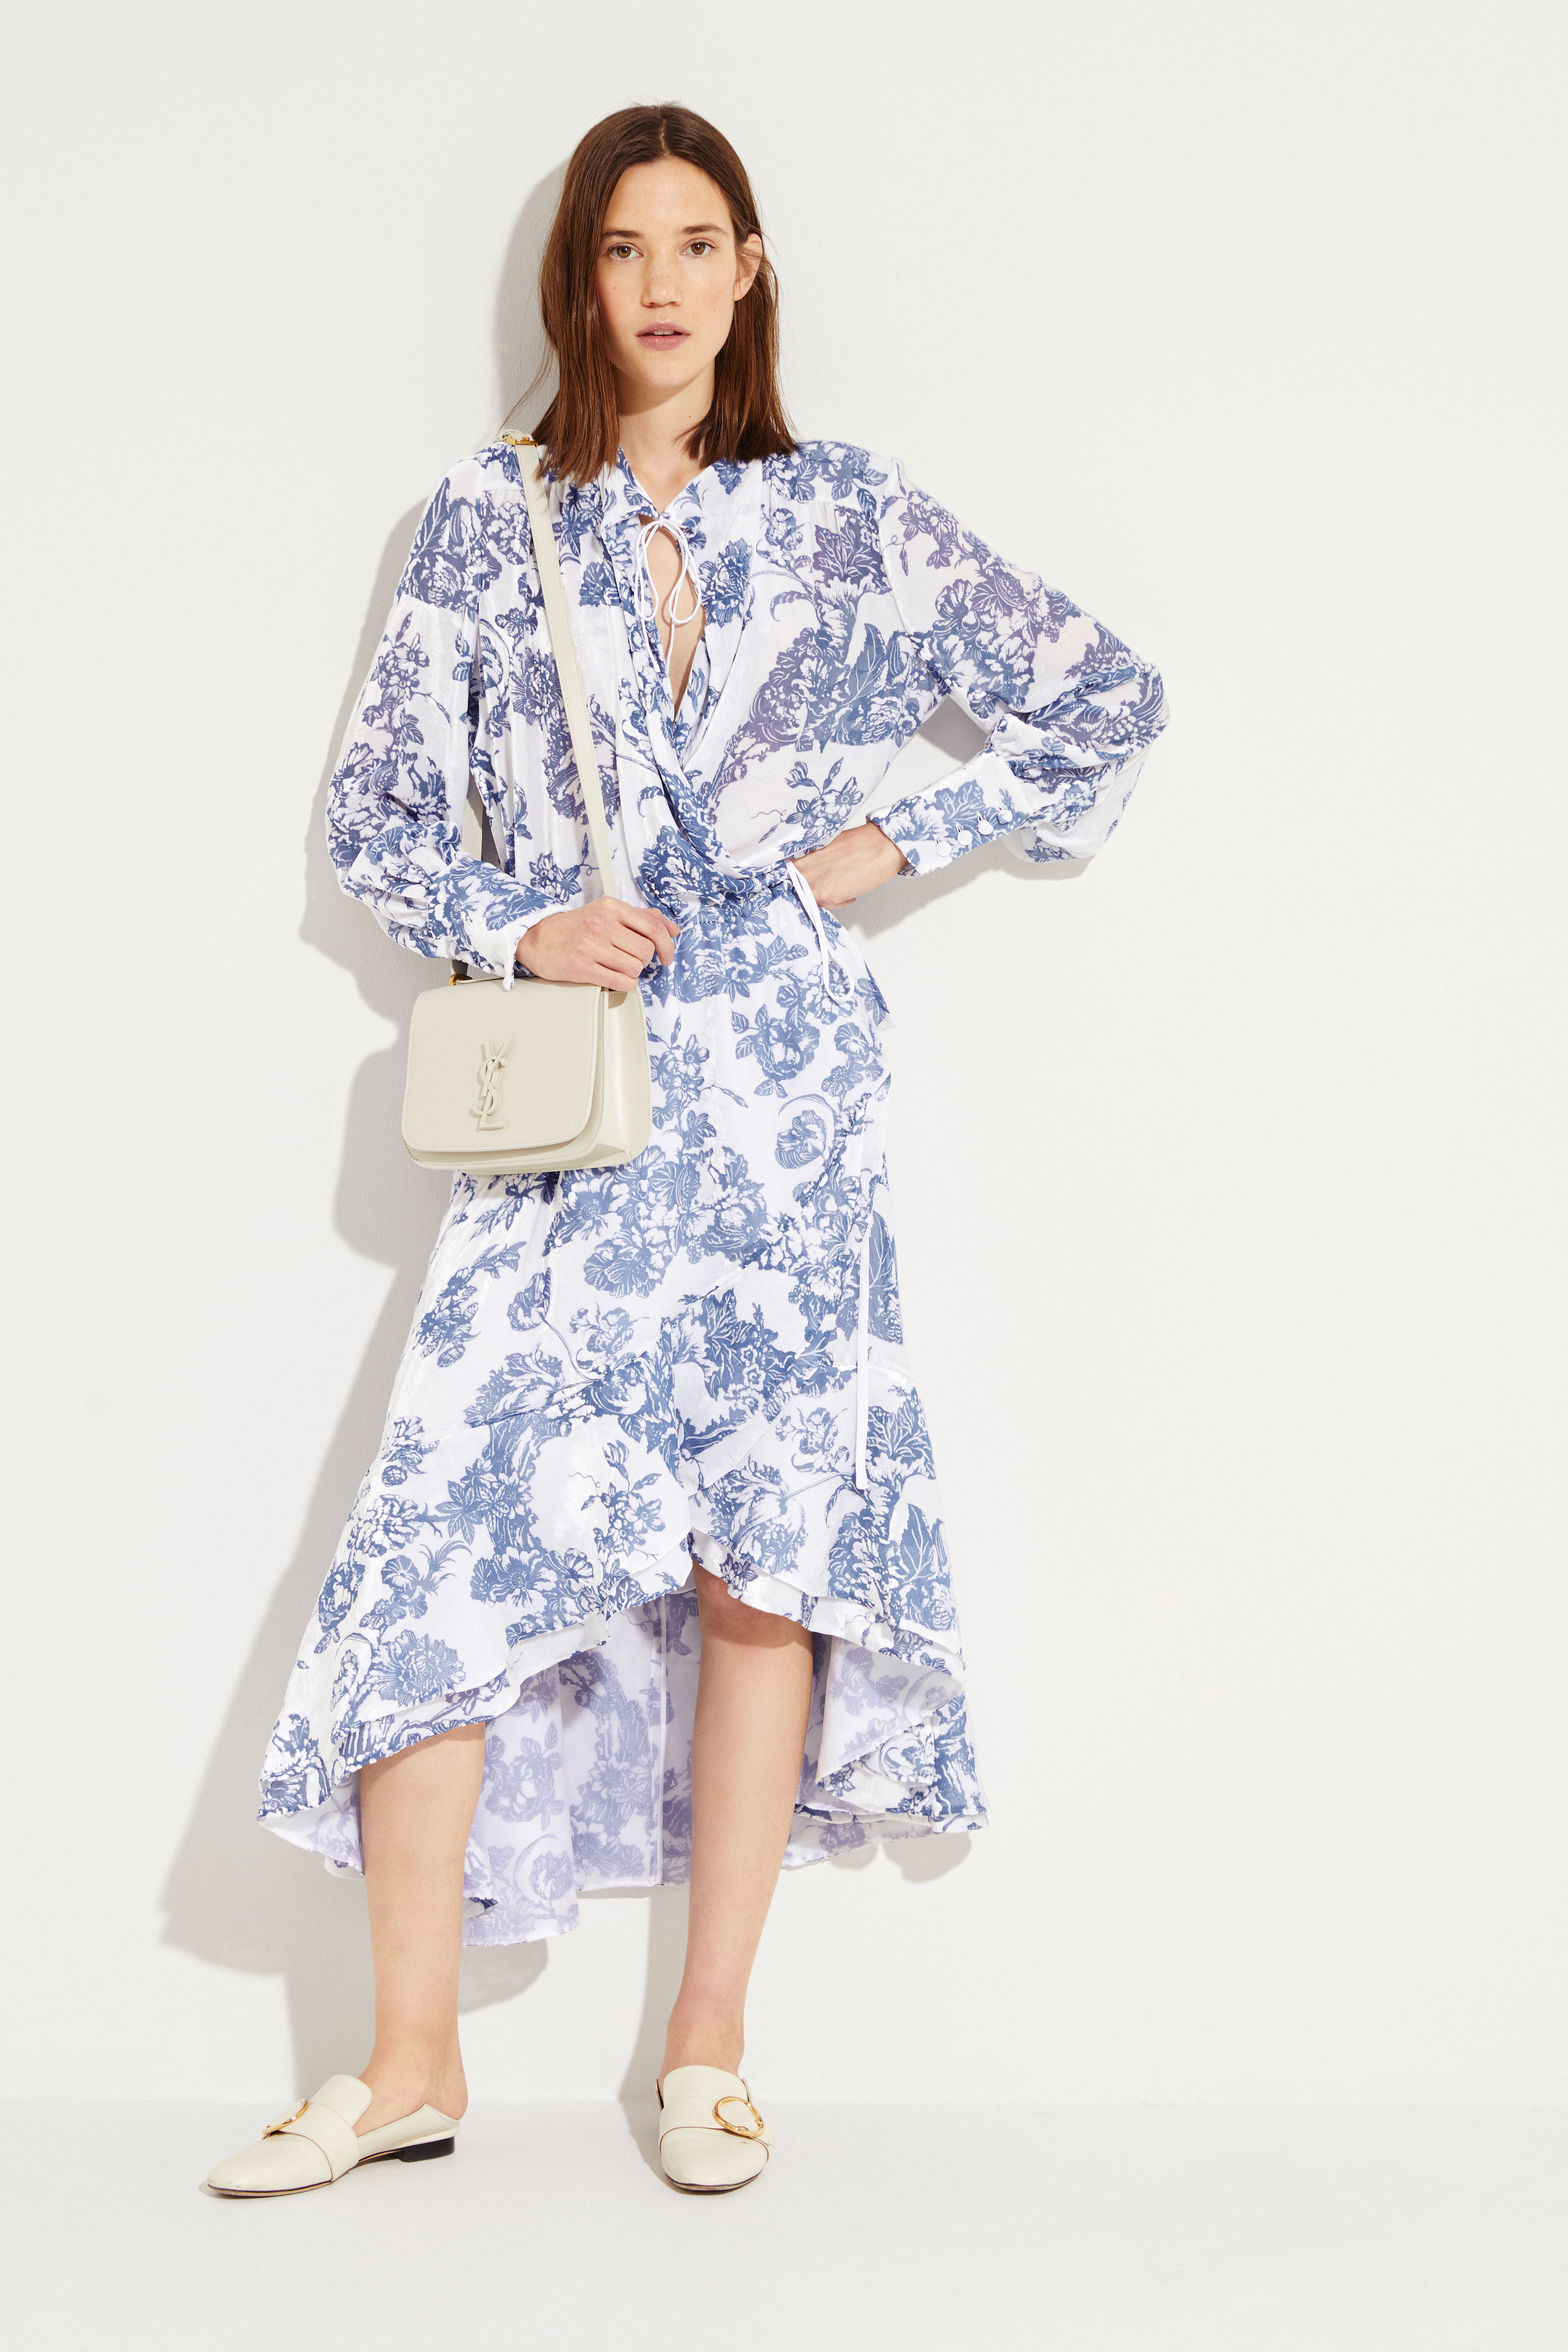 fa670b78969ded Blue And White Floral Dress Long Sleeve